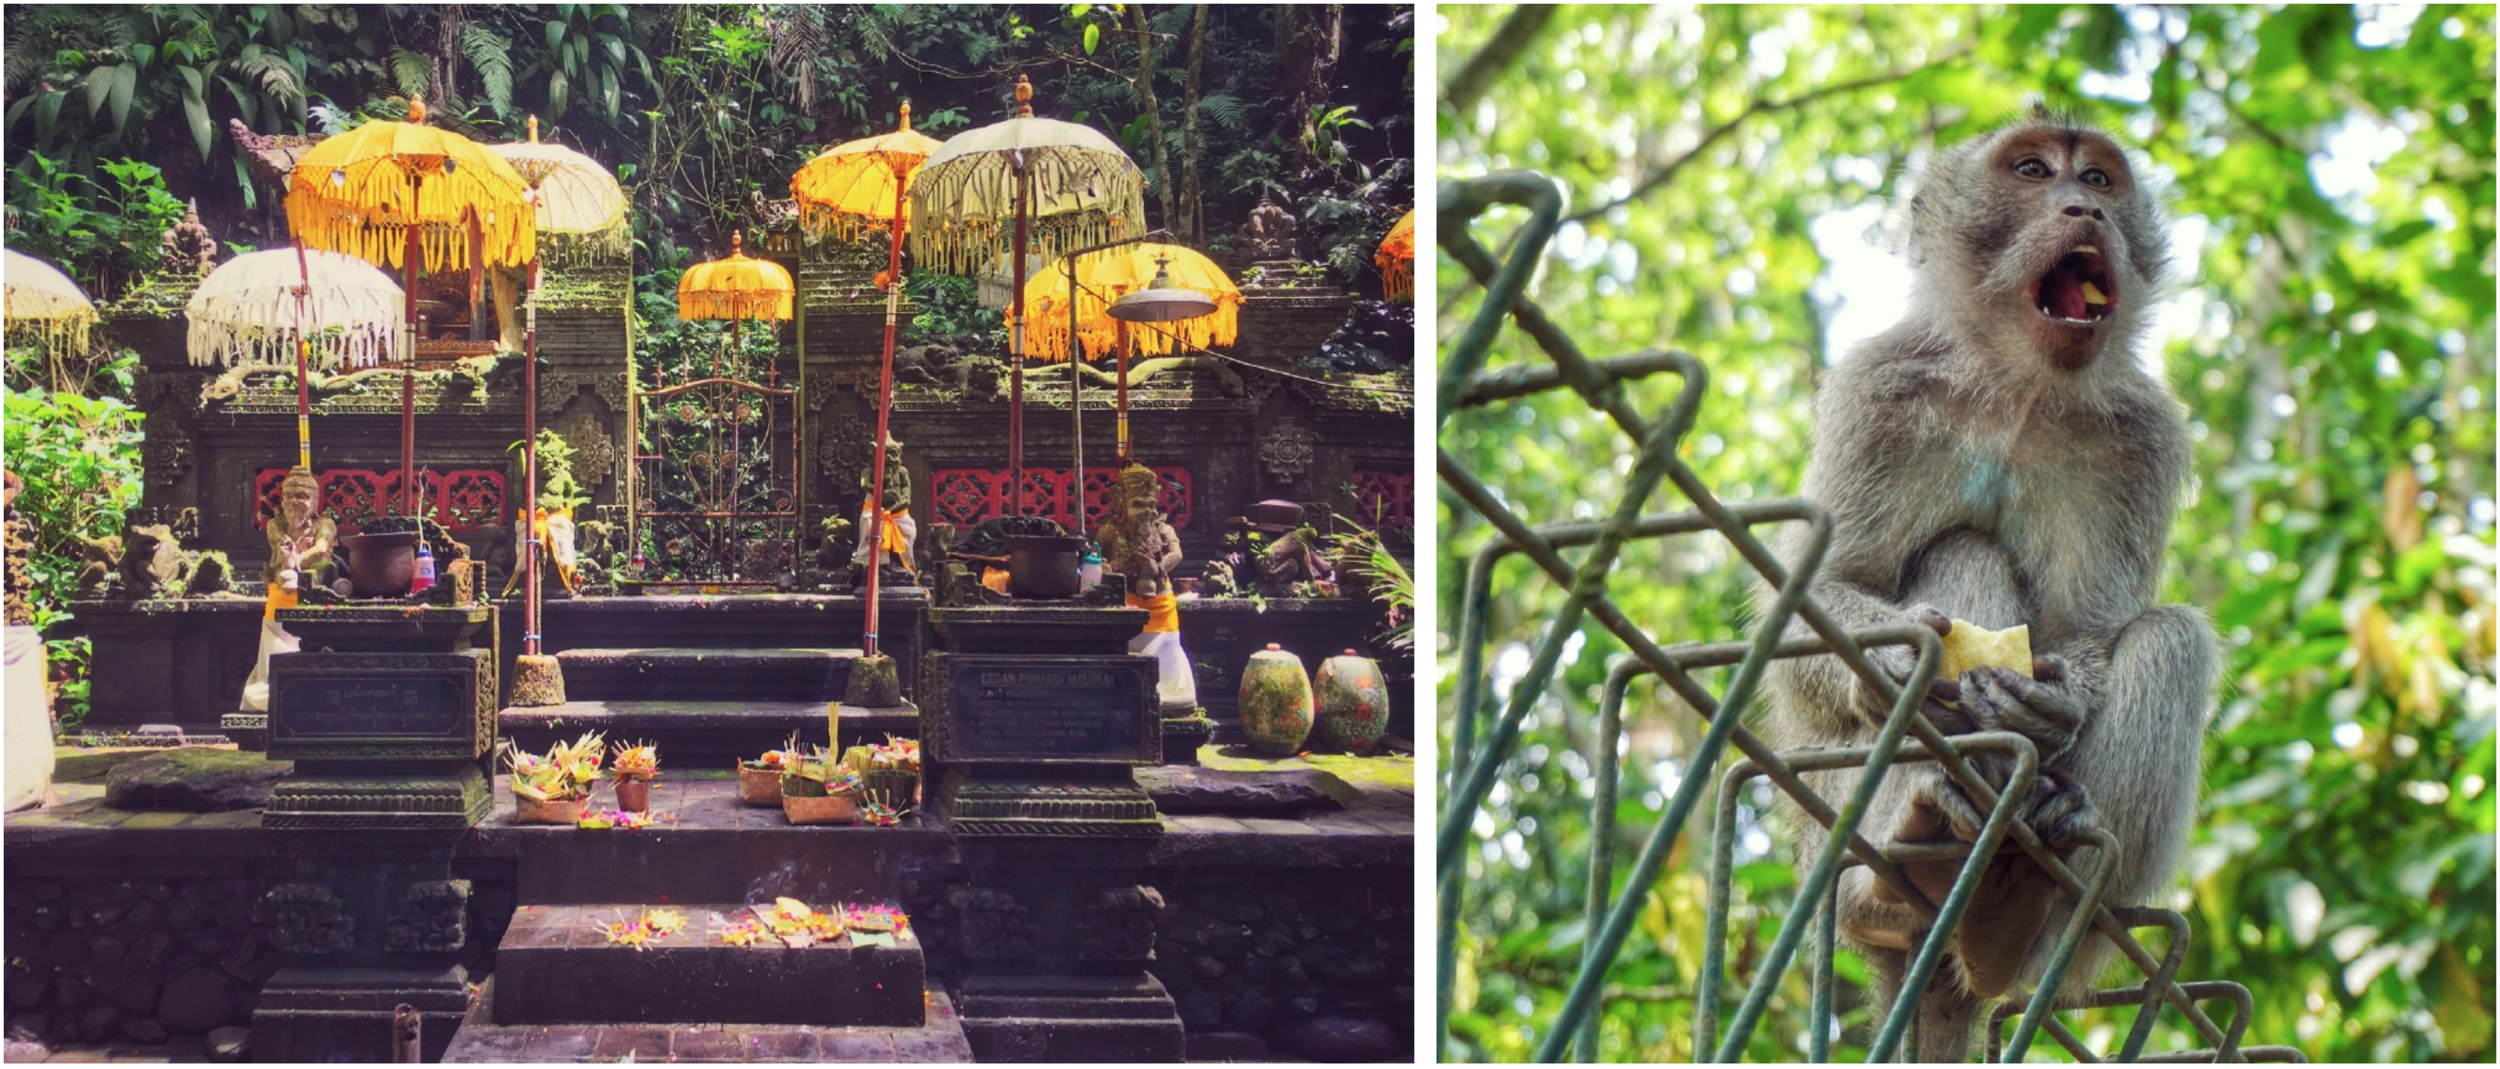 Left: umbrellas and offerings at the Balinese water temple. Right: Balinese long-tailed monkey at the Sacred Monkey Forest Sanctuary.